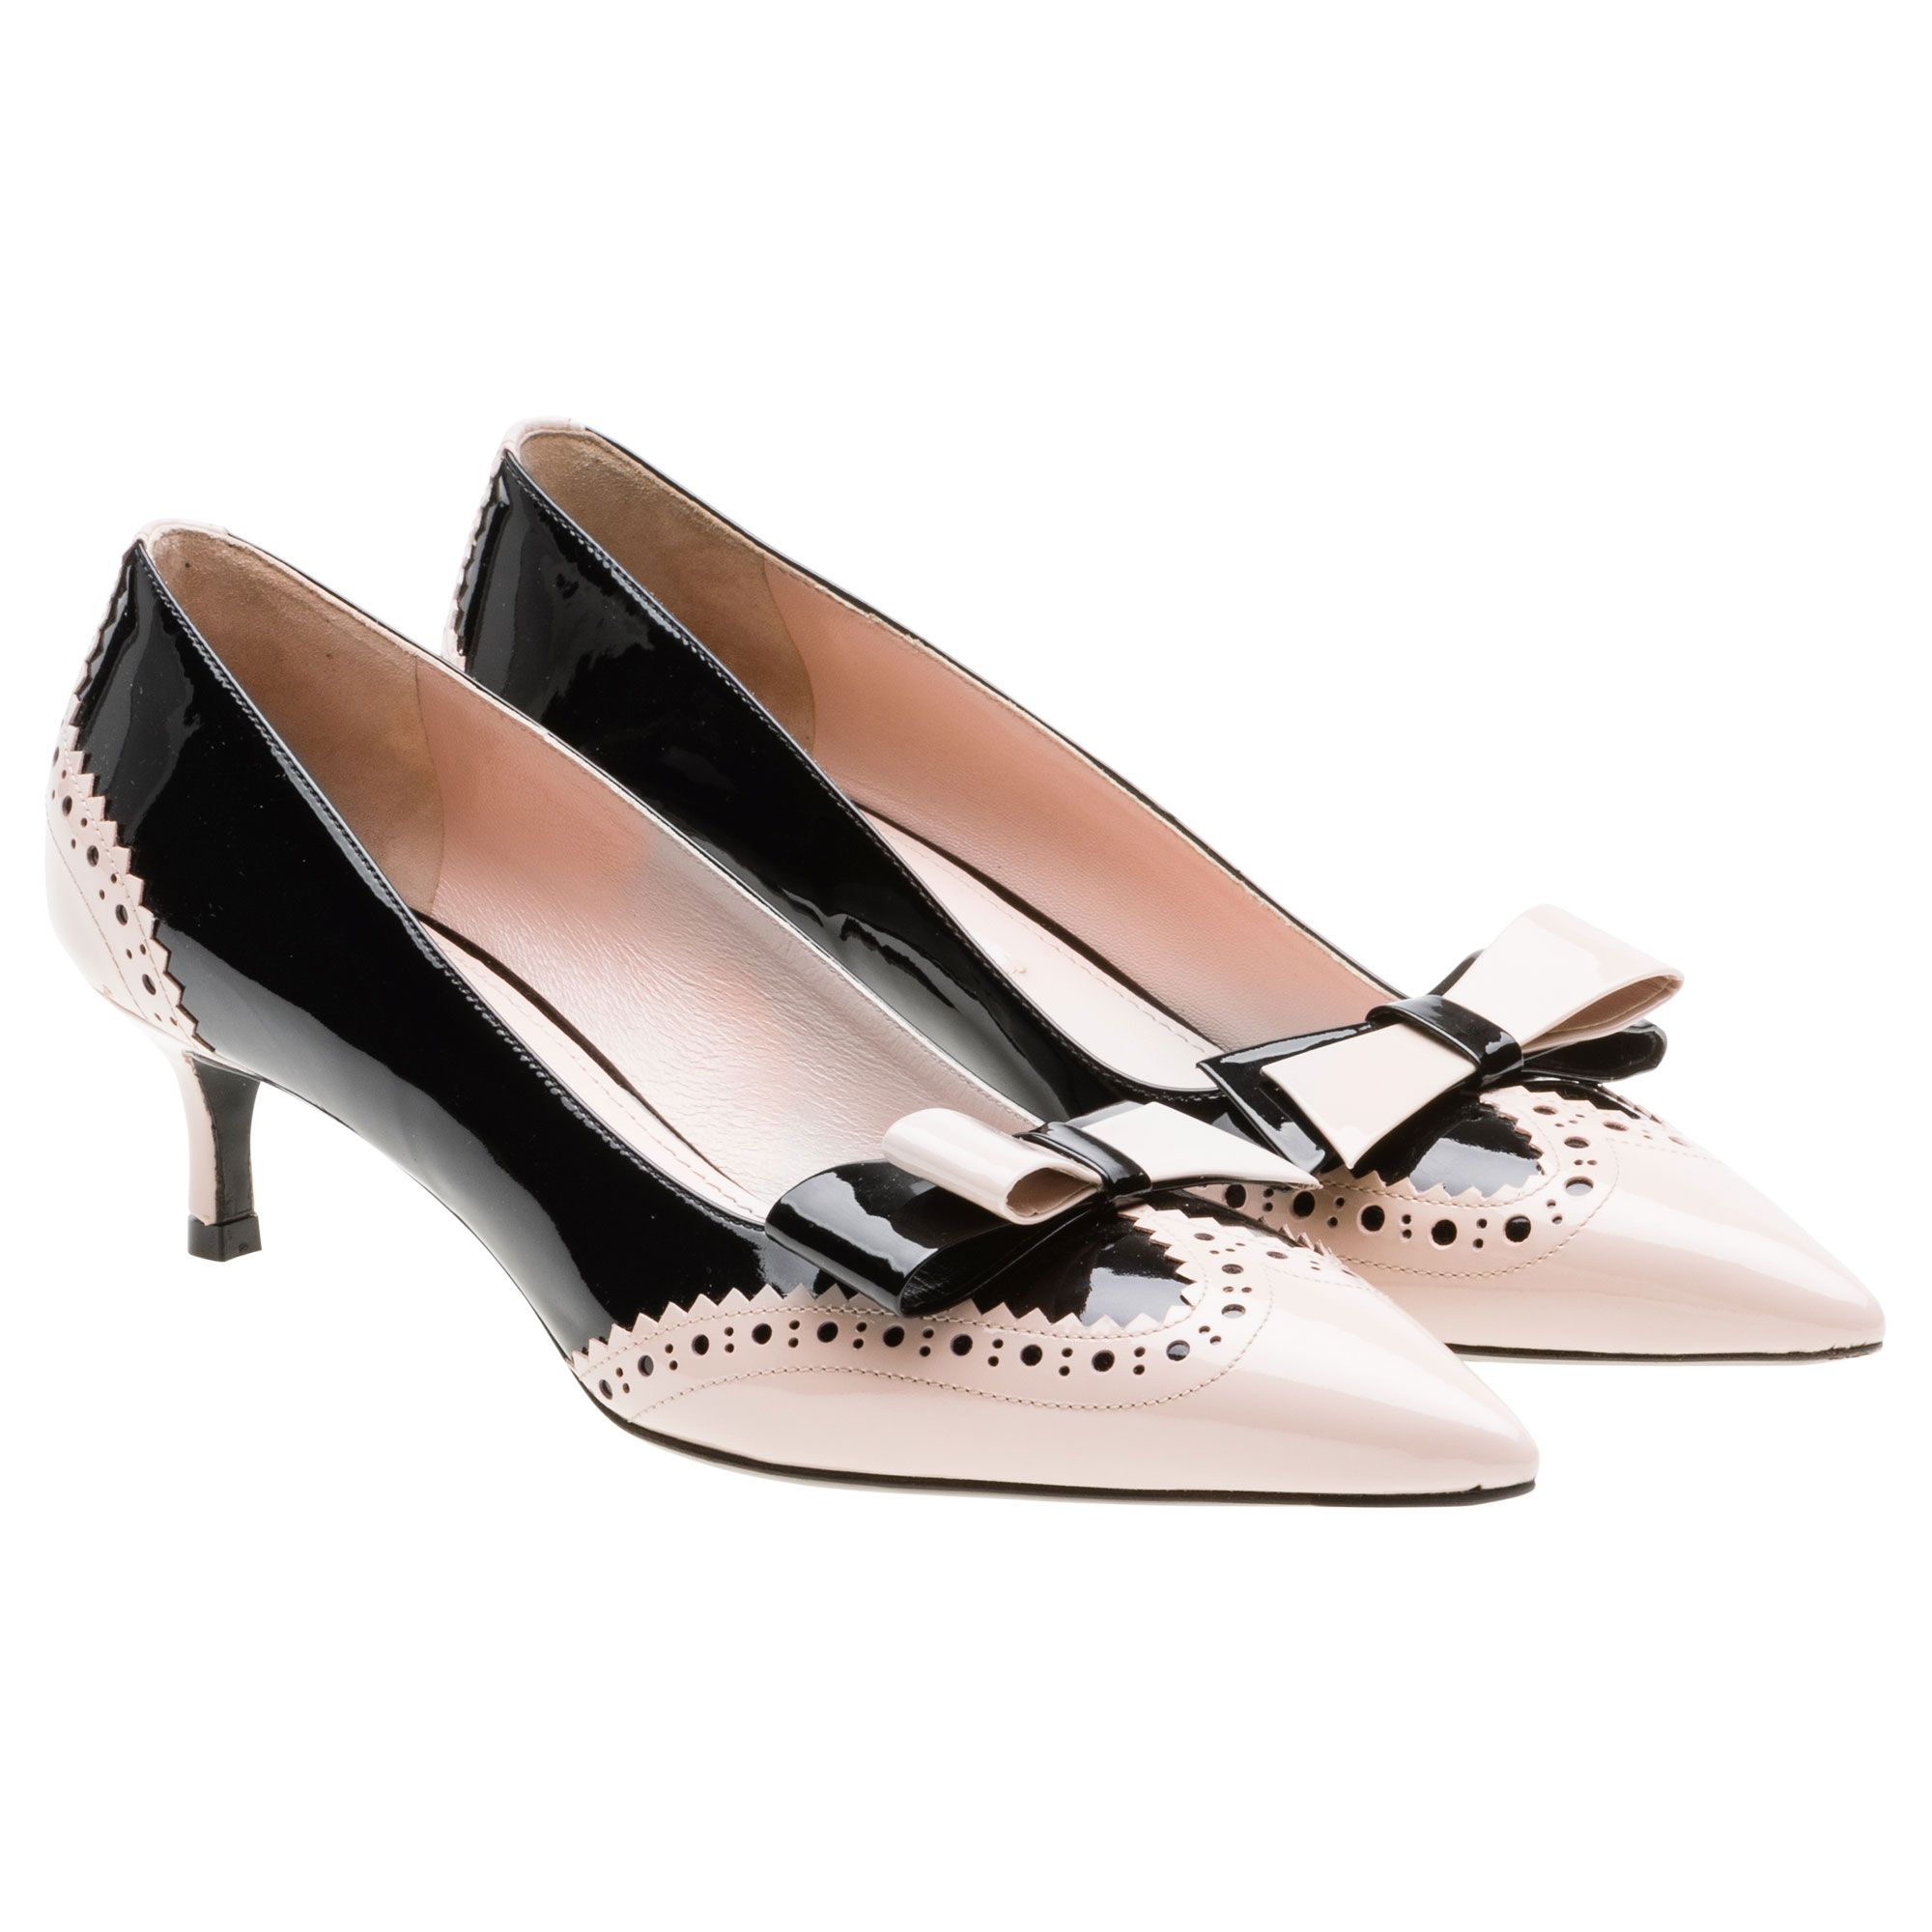 Miu Miu Patent Leather Bow Detail Pumps Kitten Heel Shoes Heels Low Heel Shoes